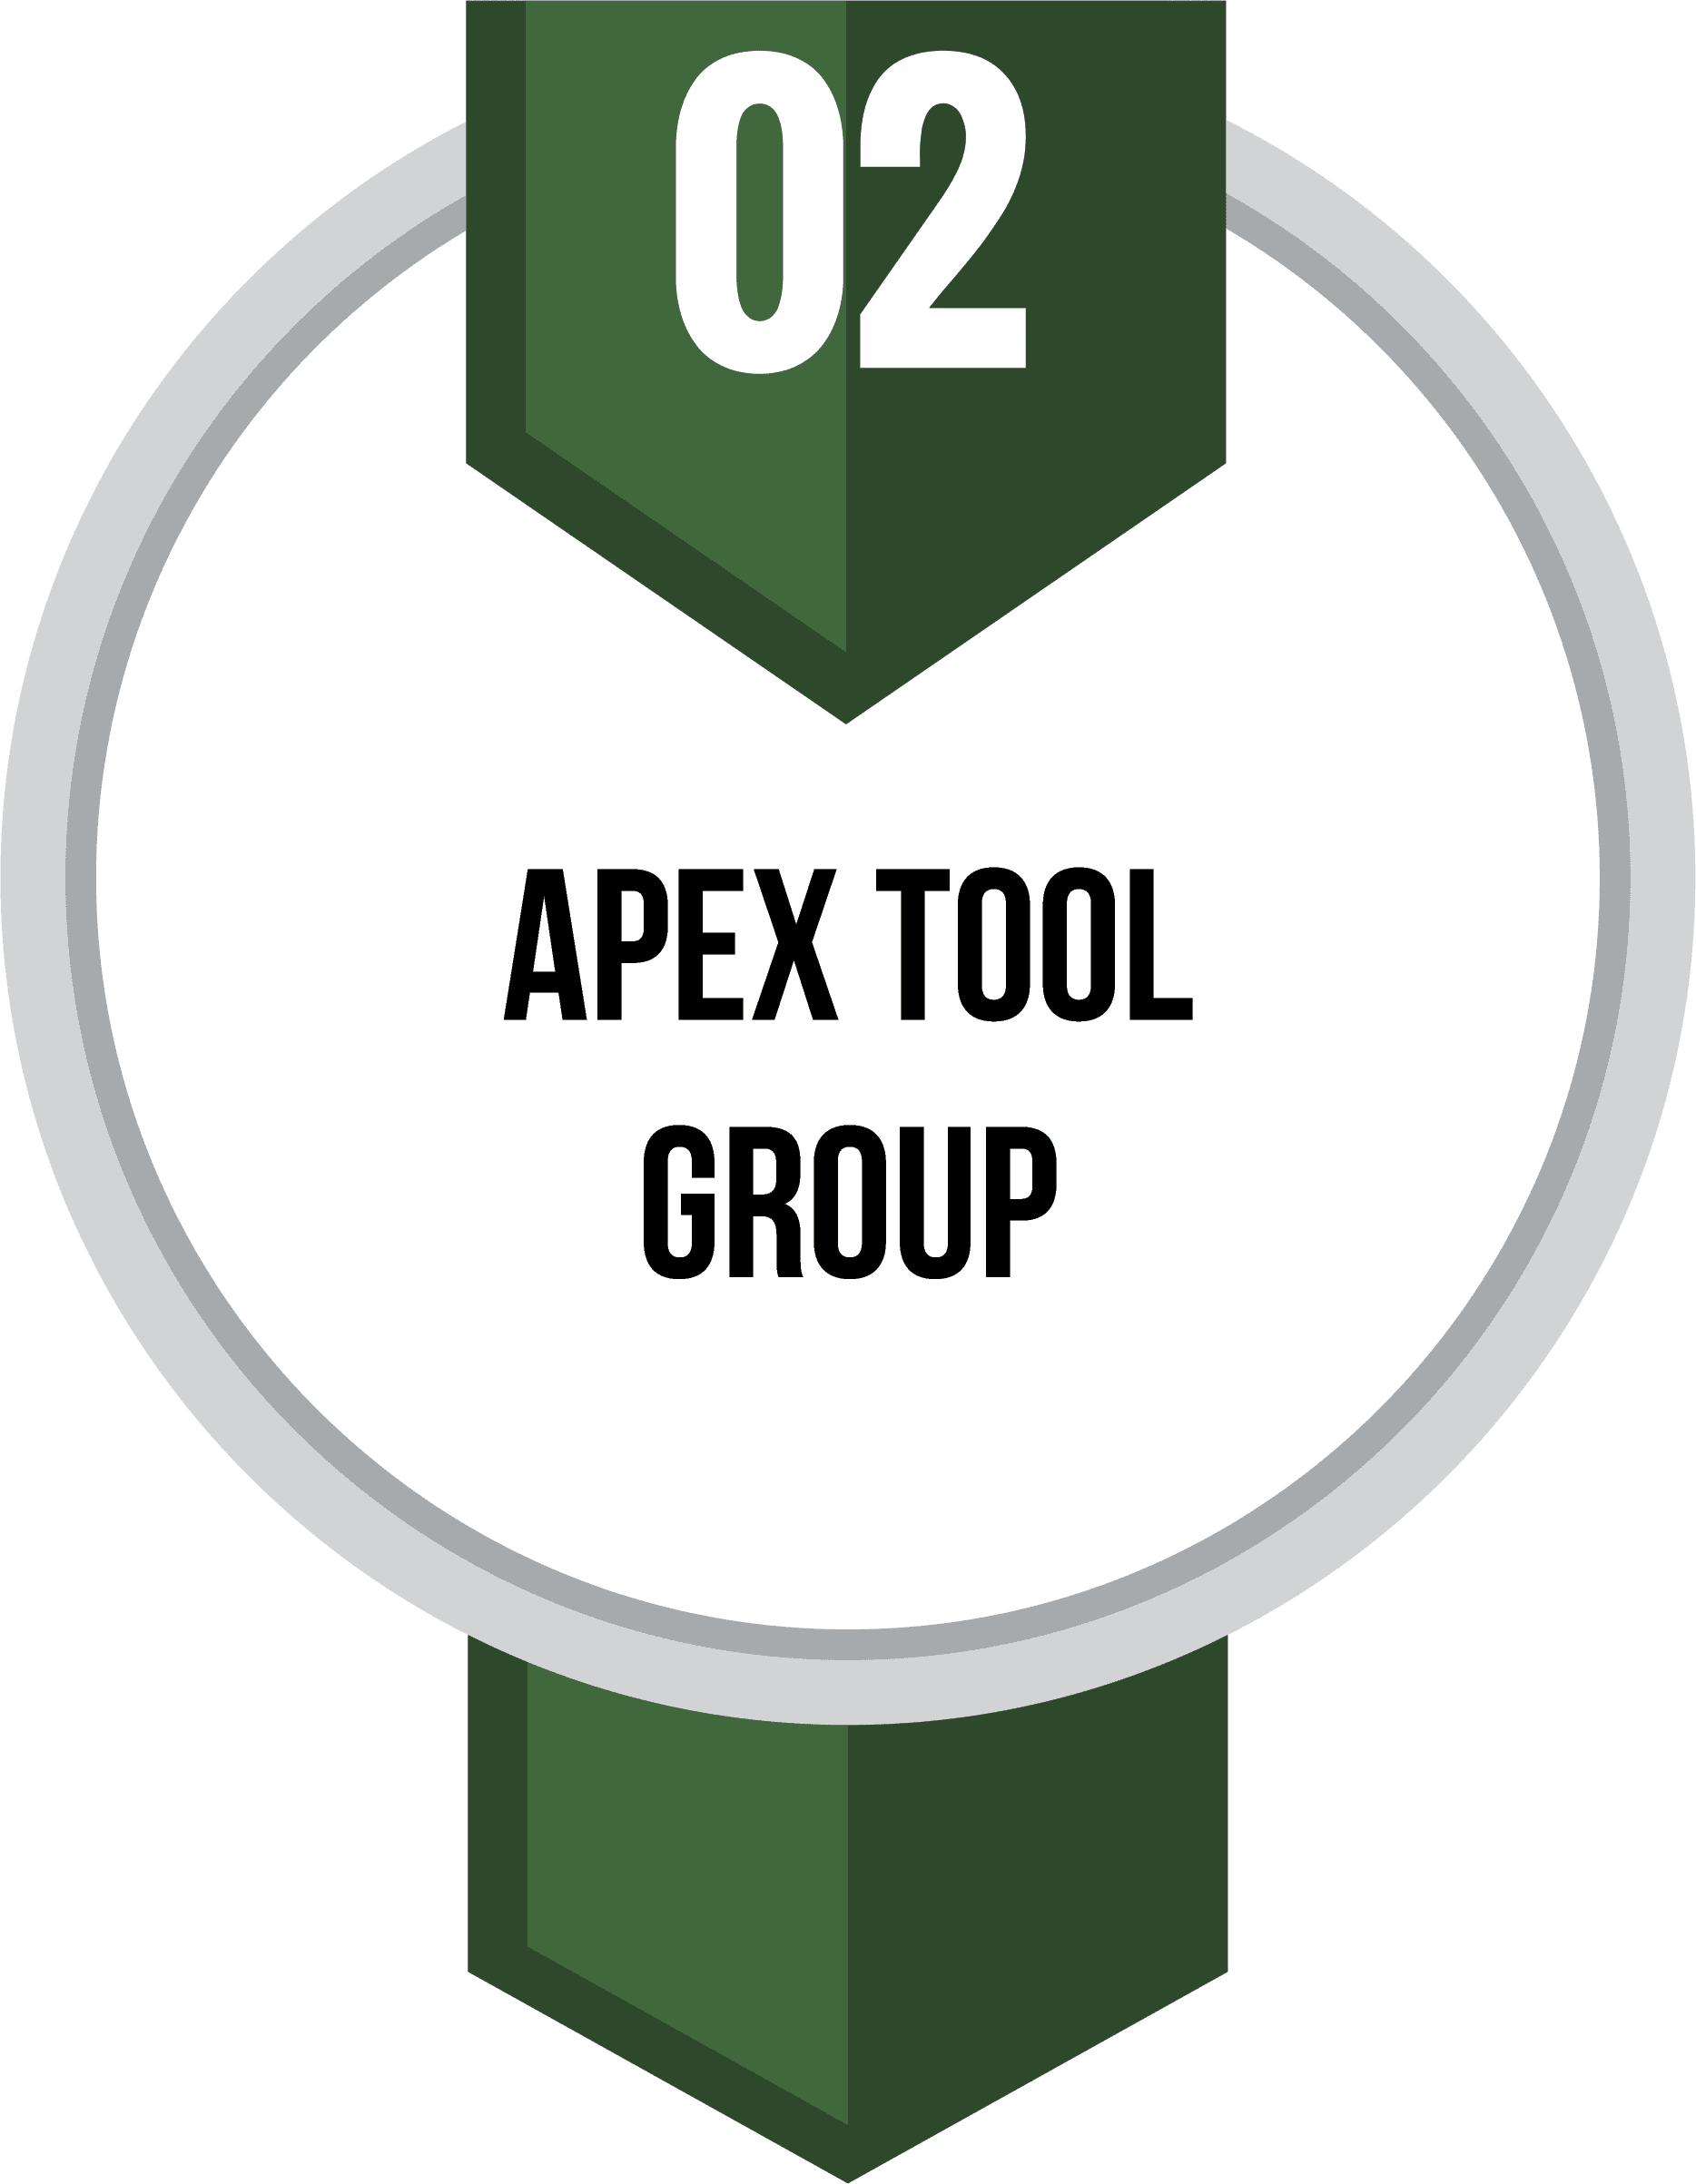 Apex Tool Group Opens in new window